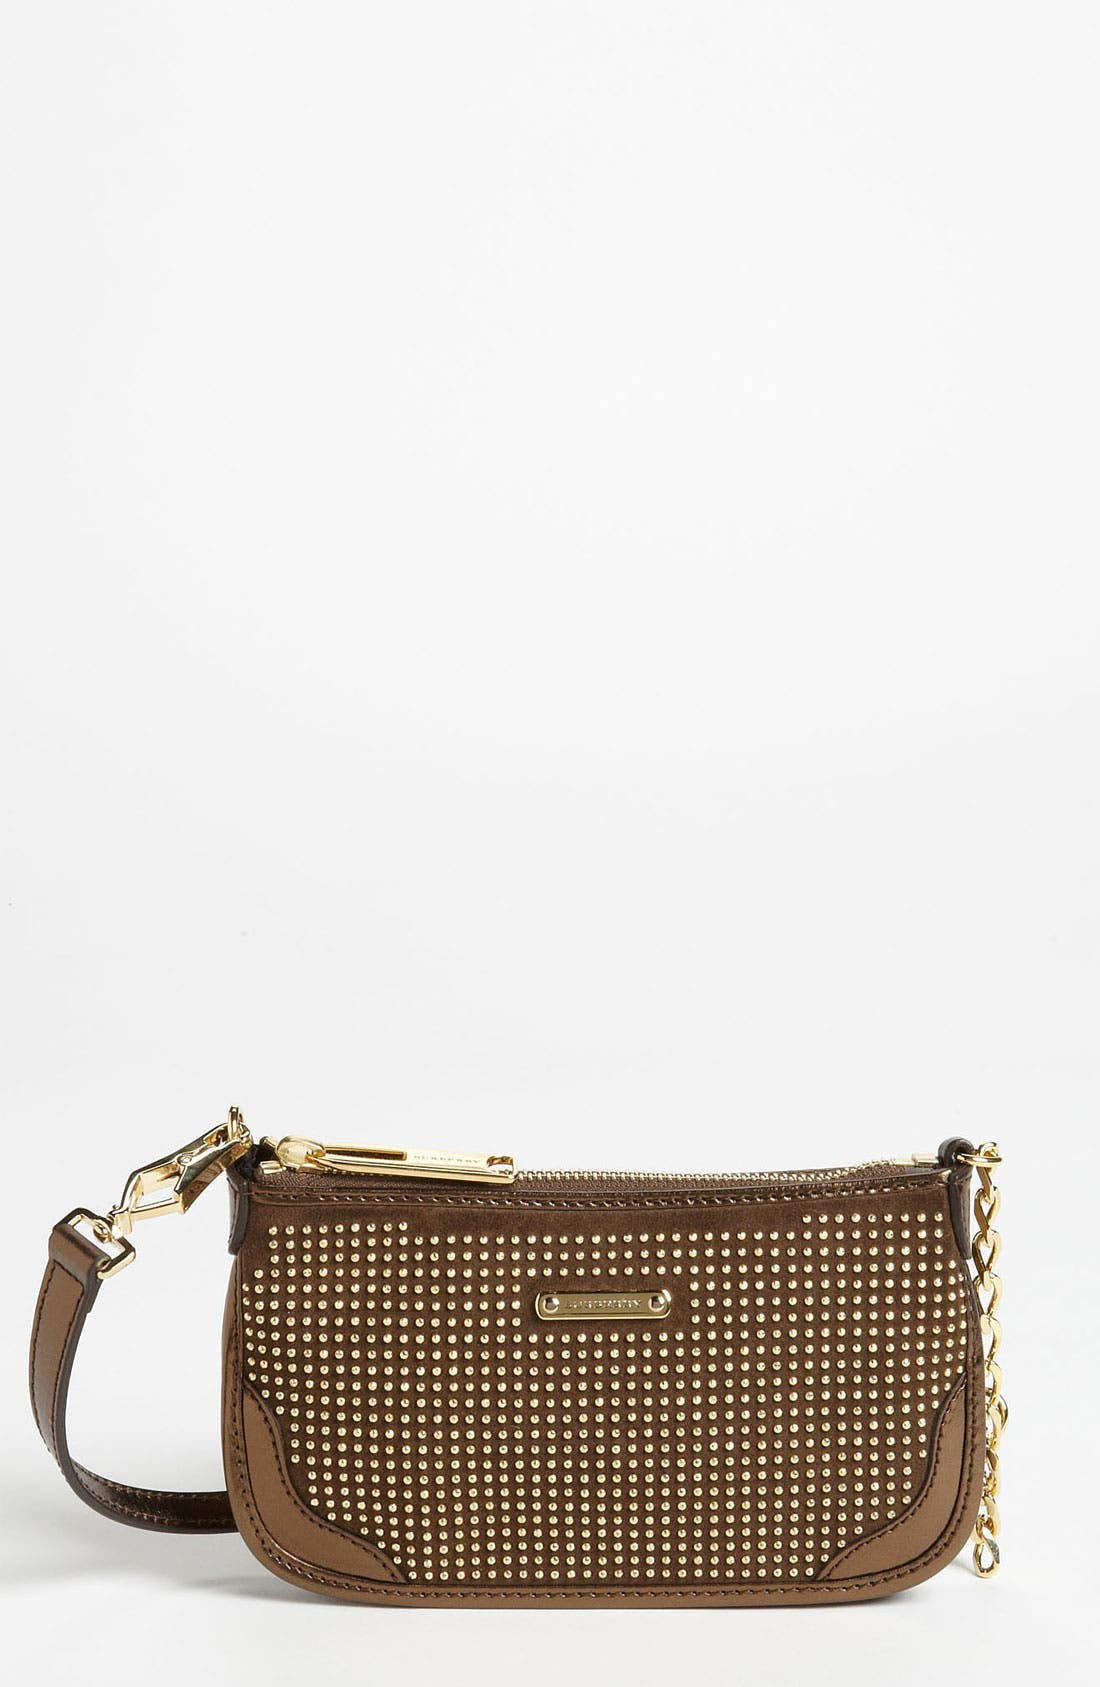 Main Image - Burberry 'Metallic Studs' Suede & Leather Pouch